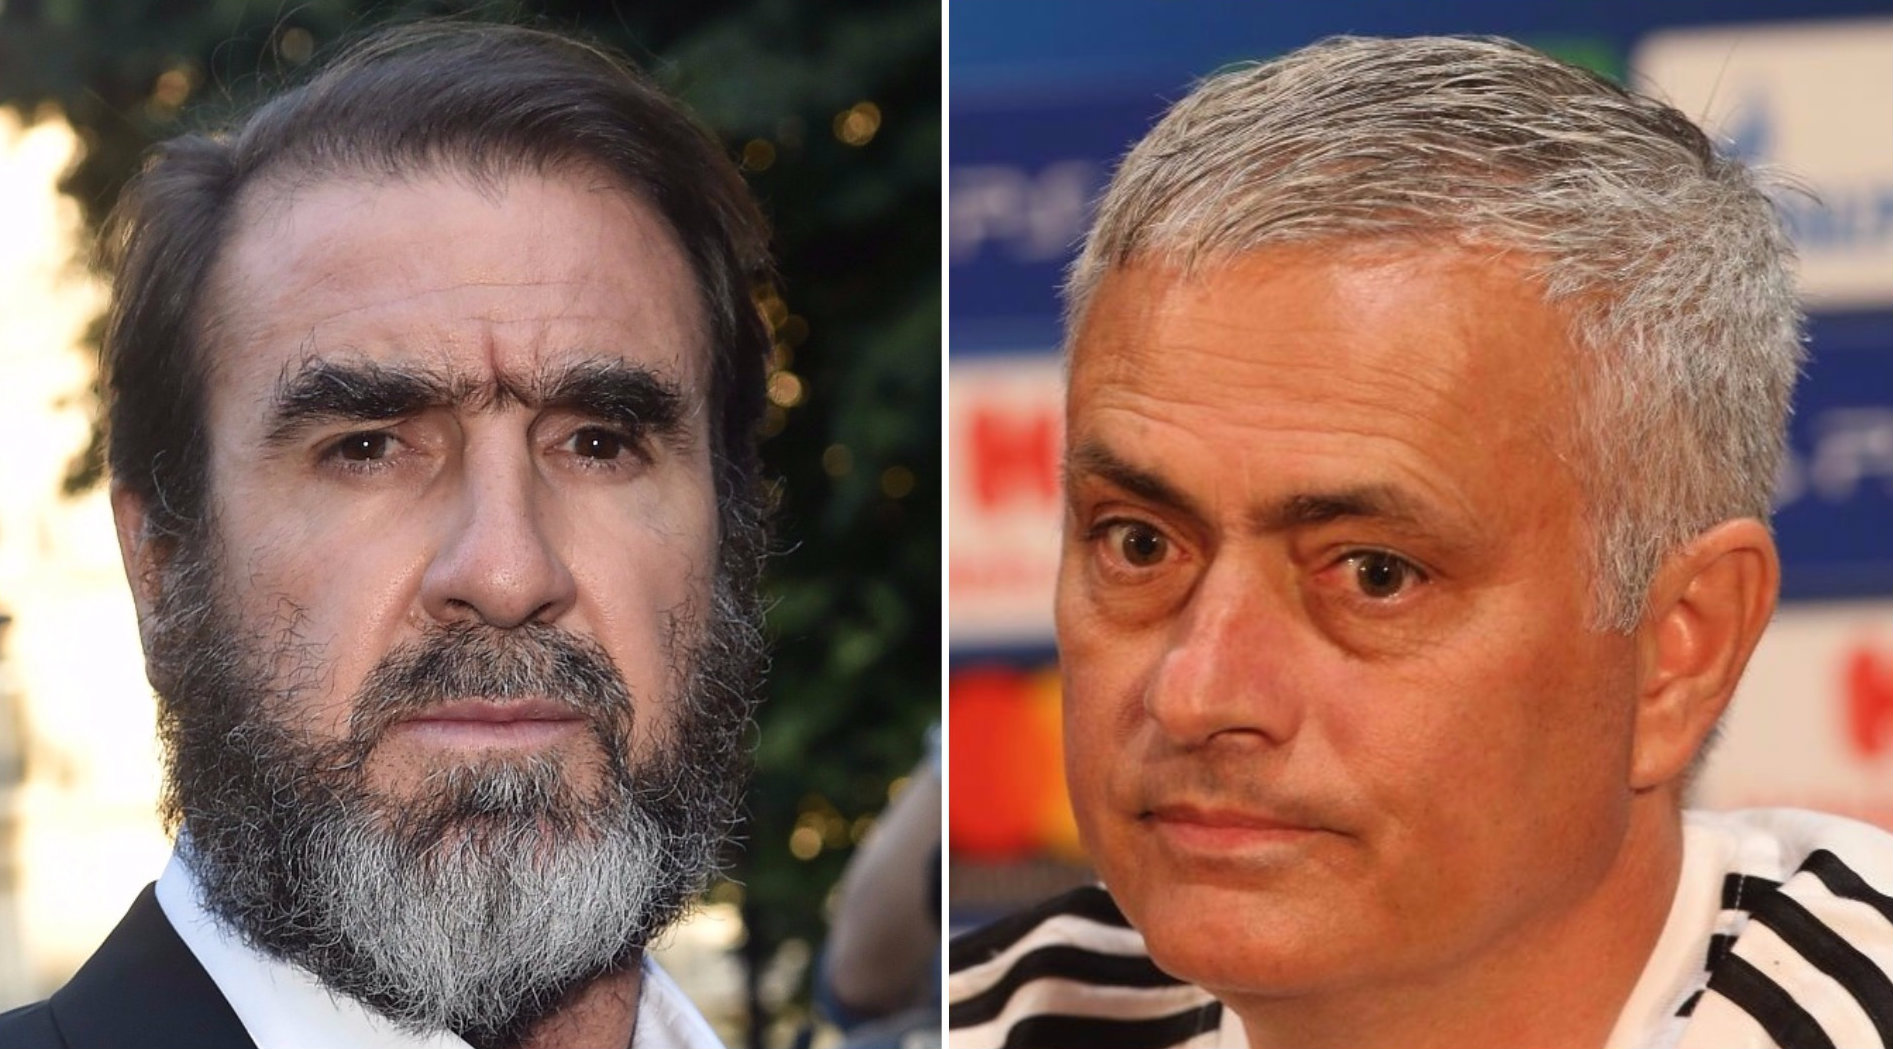 Eric Cantona slams Jose Mourinho and suggests Ryan Giggs should manage Manchester United